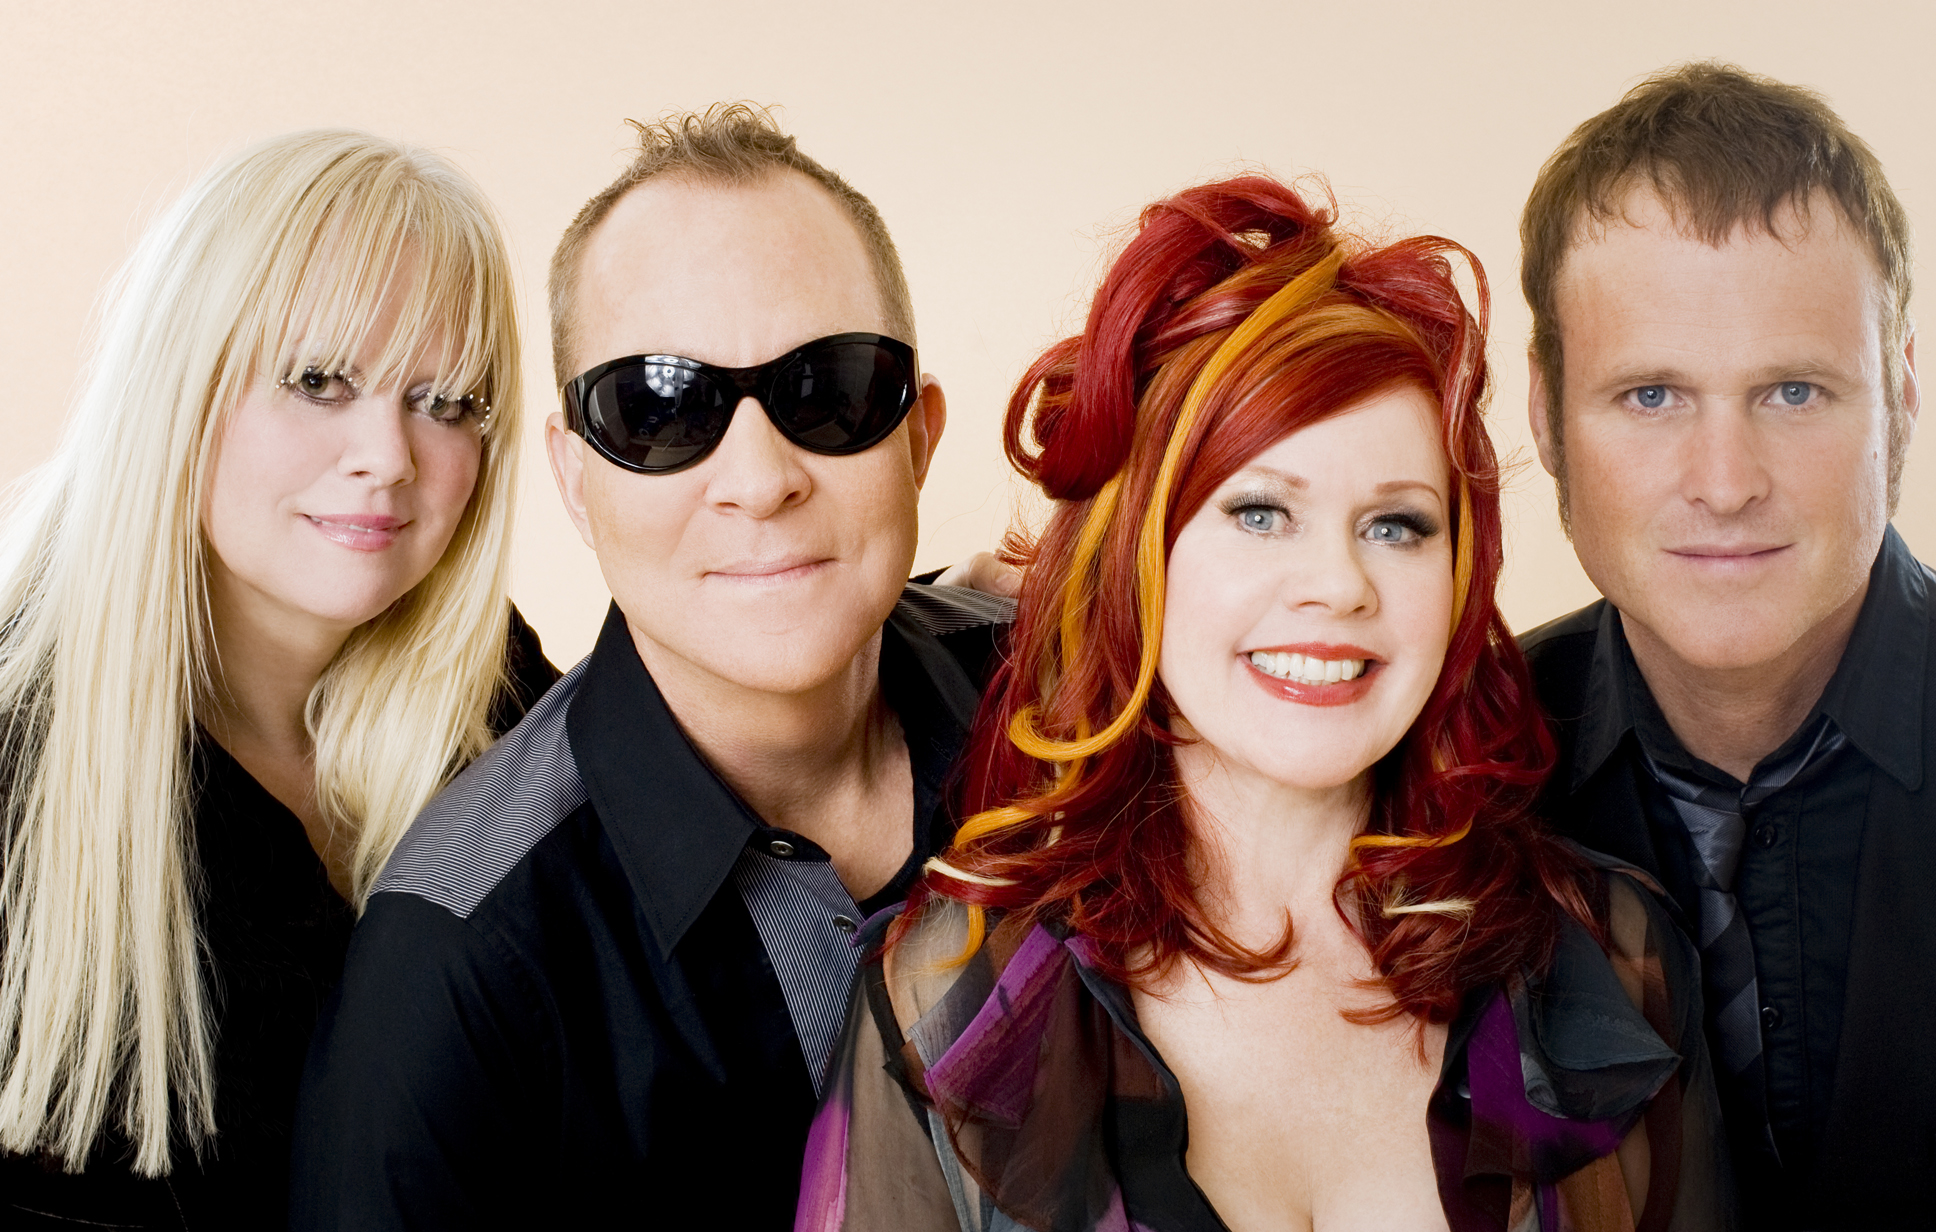 B-52's portrait #2  Photo by Pieter M  van Hattem.jpg